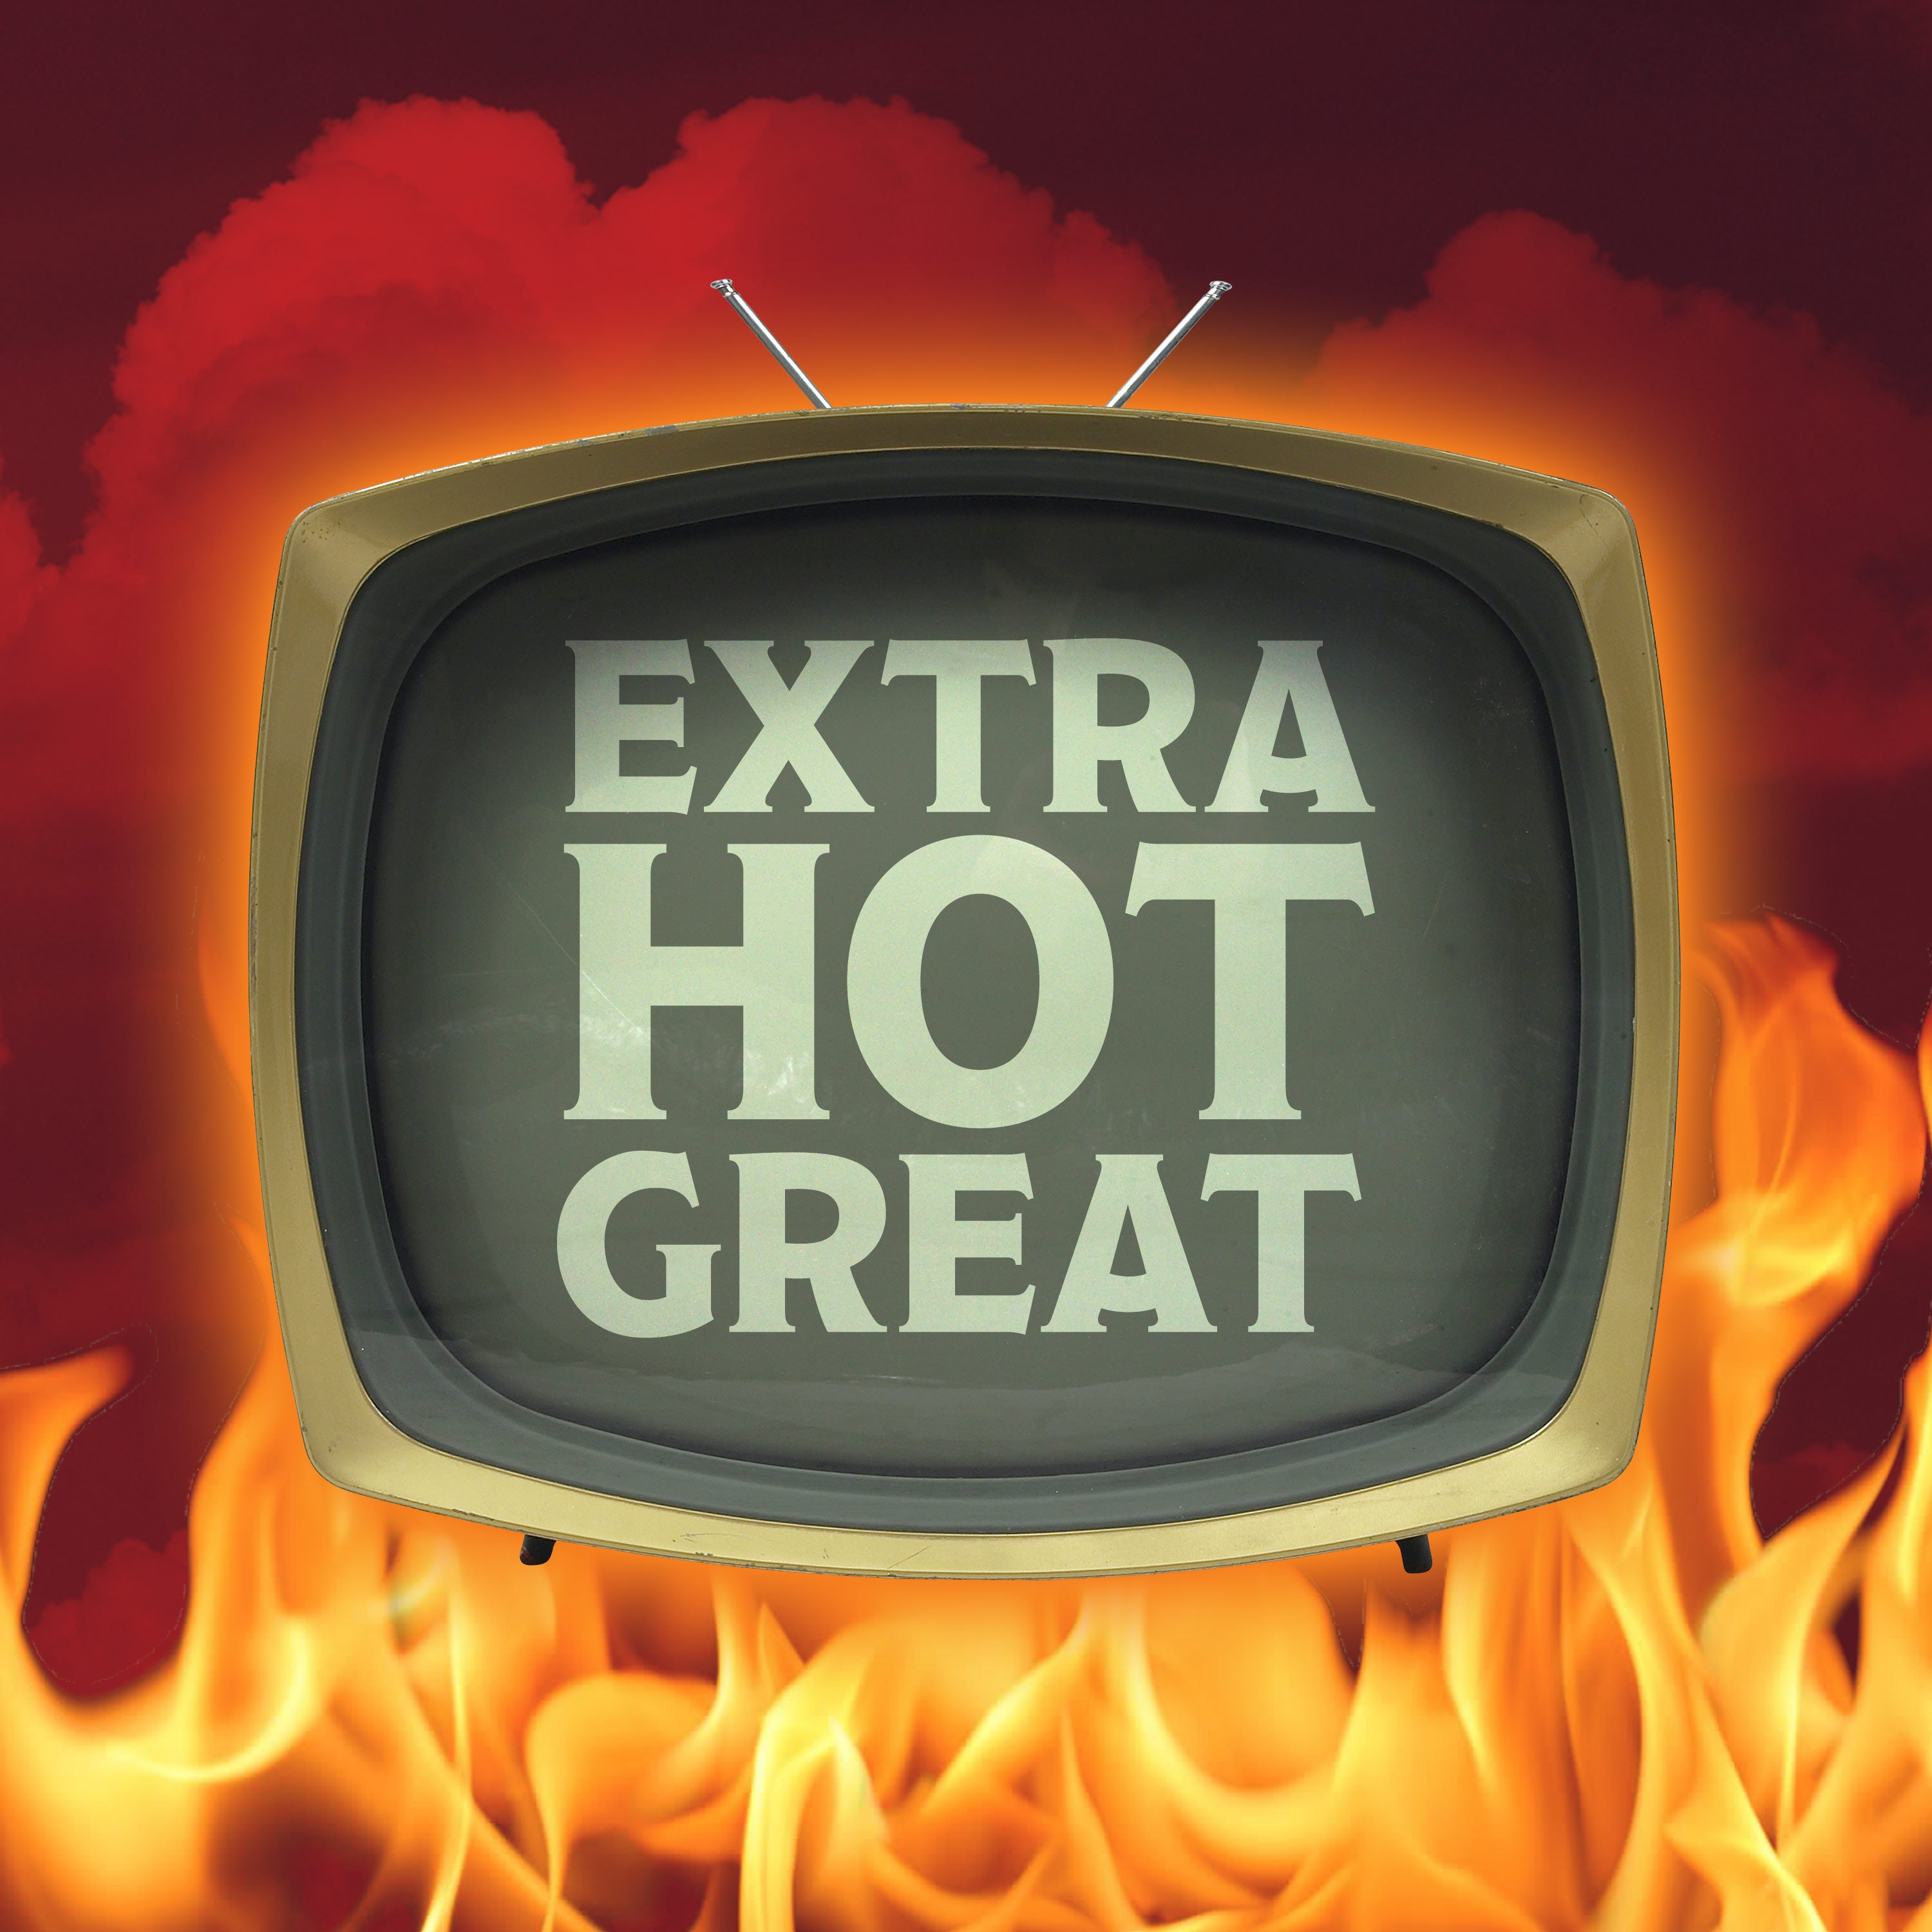 Extra Hot Great